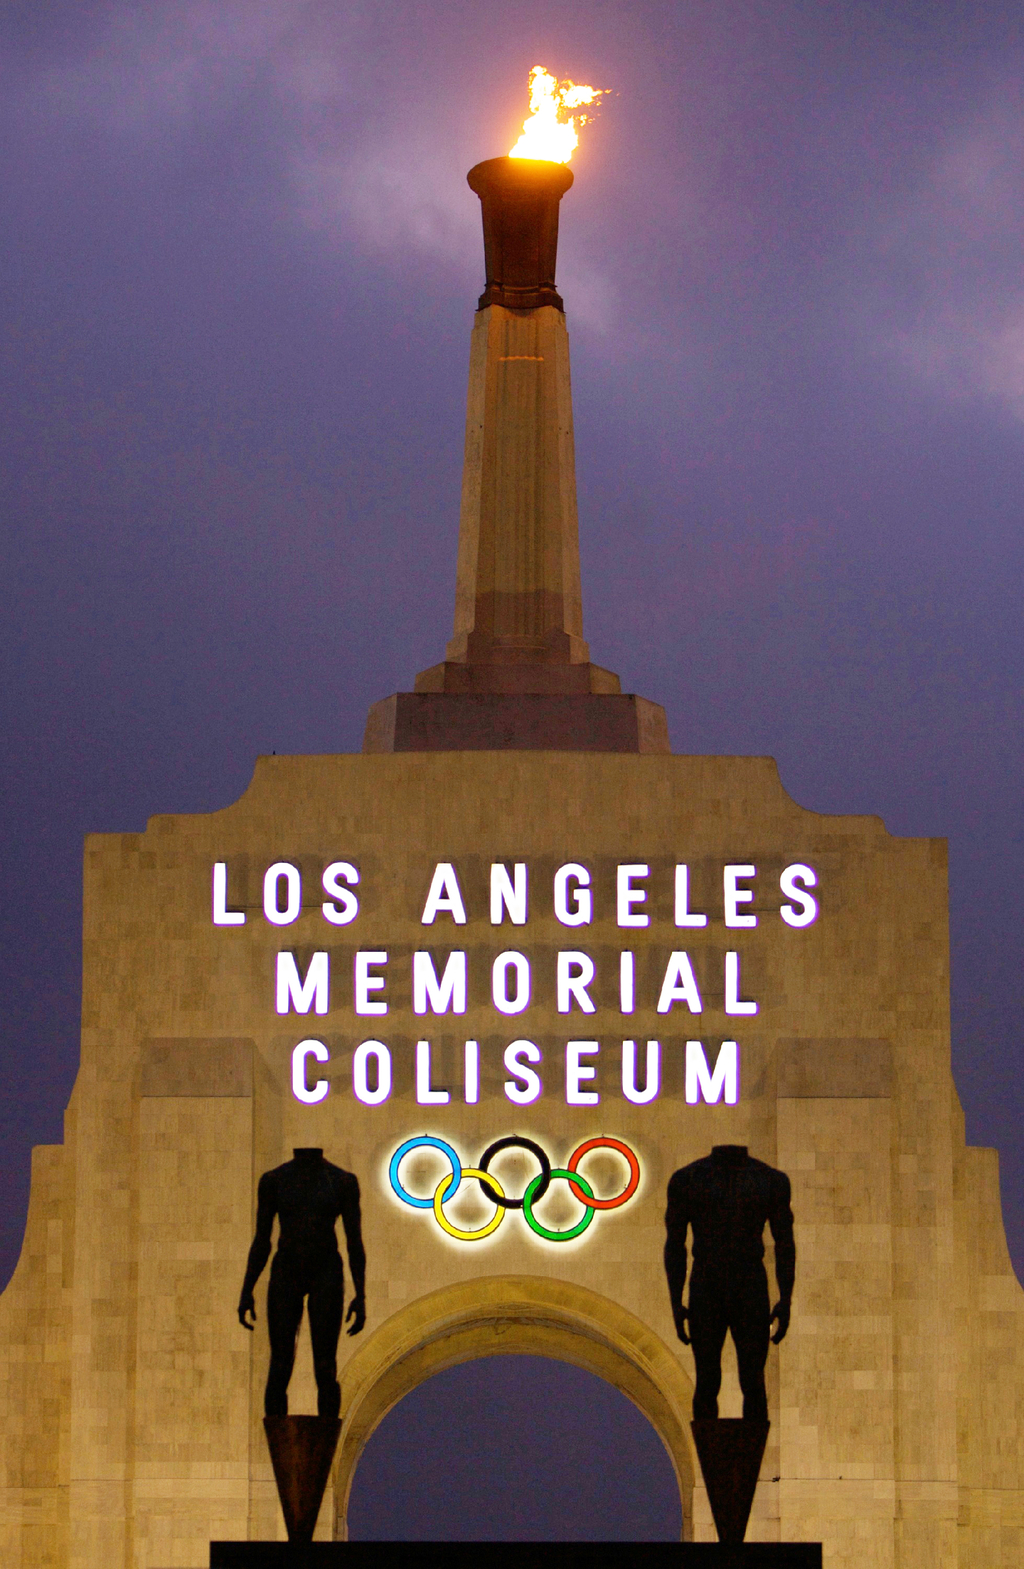 FILE - This Feb. 13, 2008, file photo shows the facade of The Los Angeles Memorial Coliseum in Los Angeles. It was announced Monday, July 31, 2017, th...